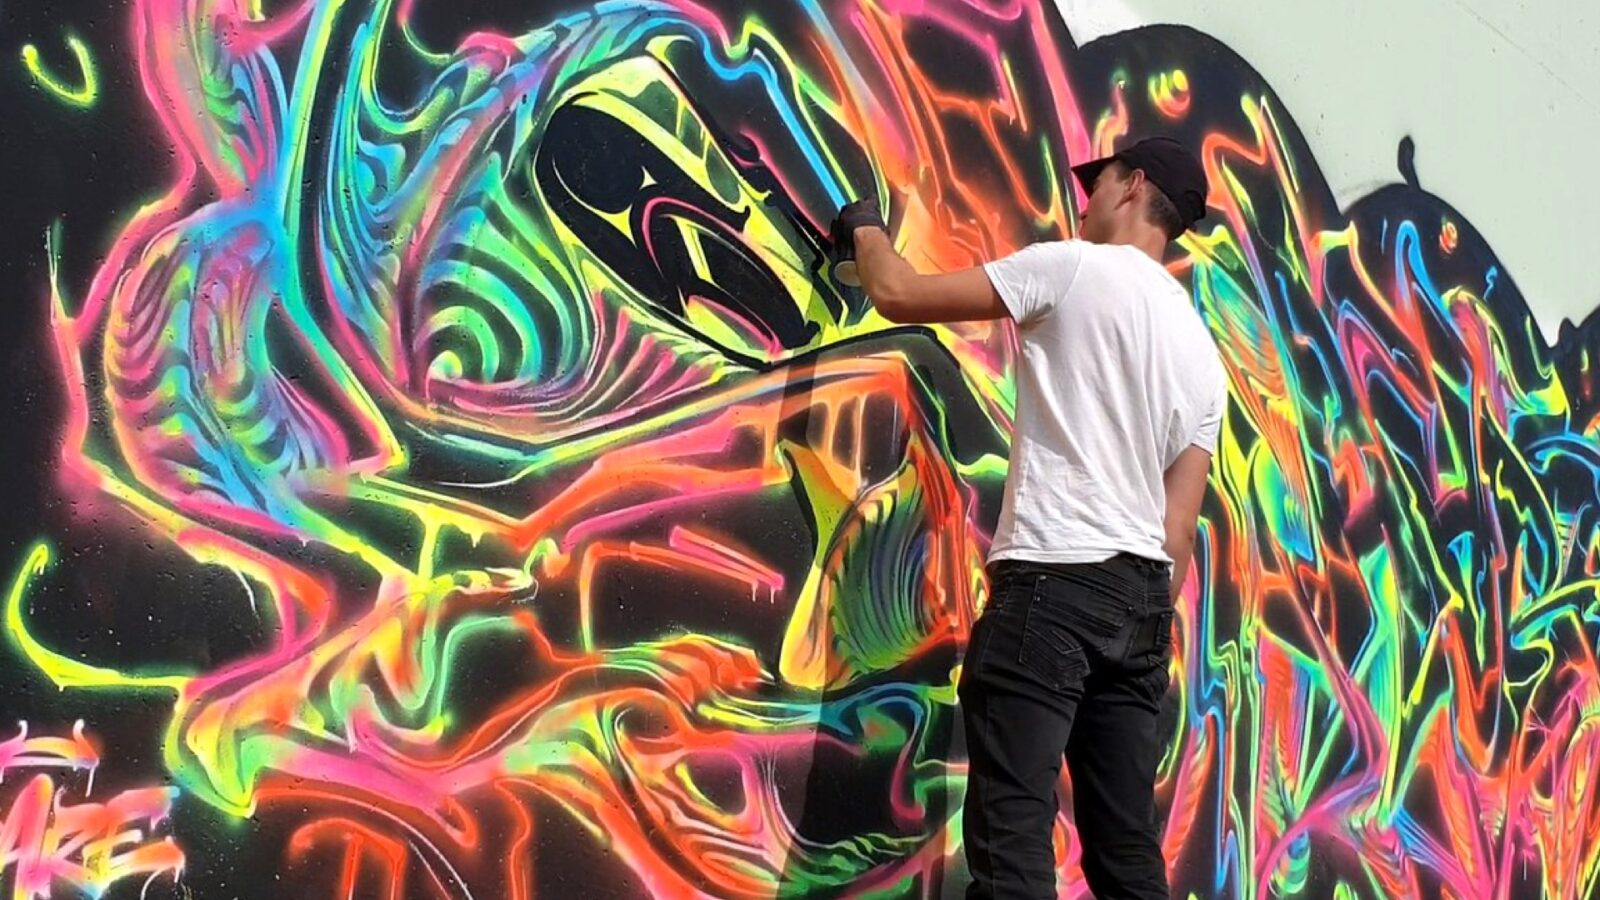 Skare (Poland) Graffiti Artist Interview